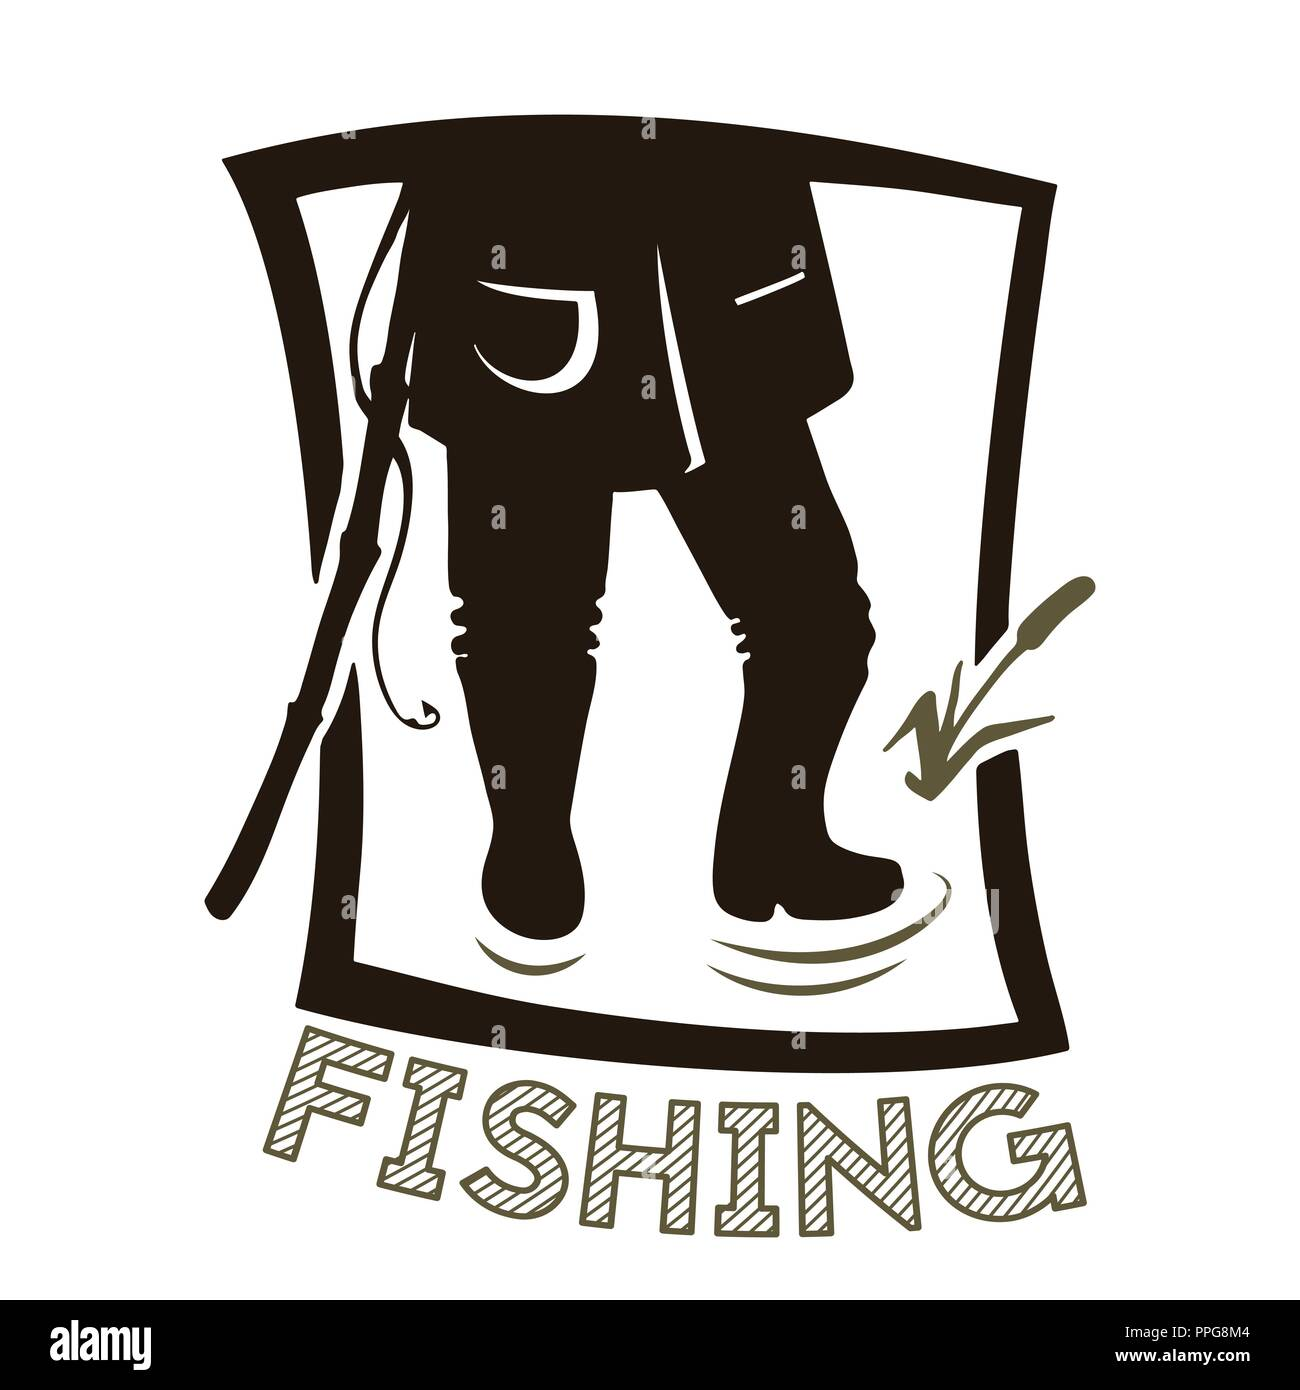 The legs of the angler. Black and white silhouette. Fishing vector illustration. - Stock Image